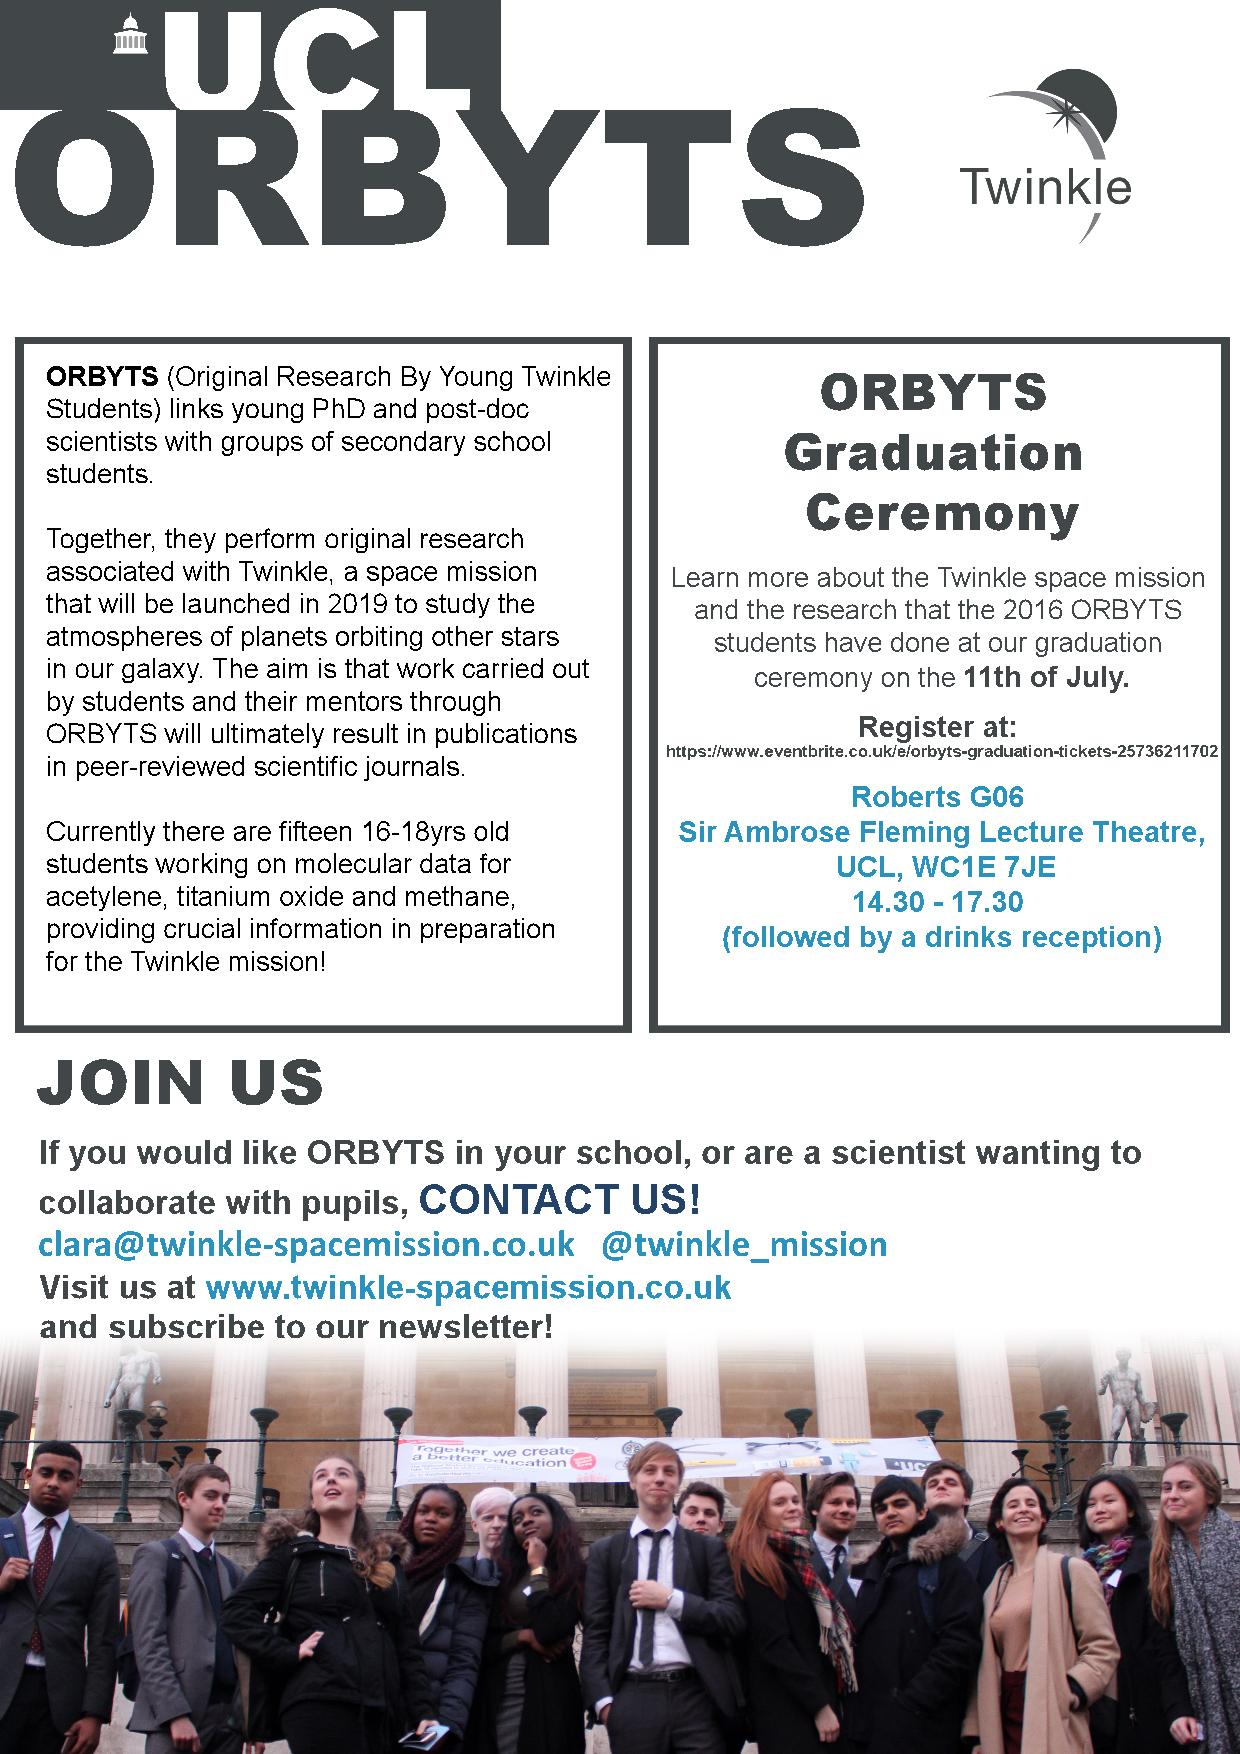 Orbyts Graduation Ceremony